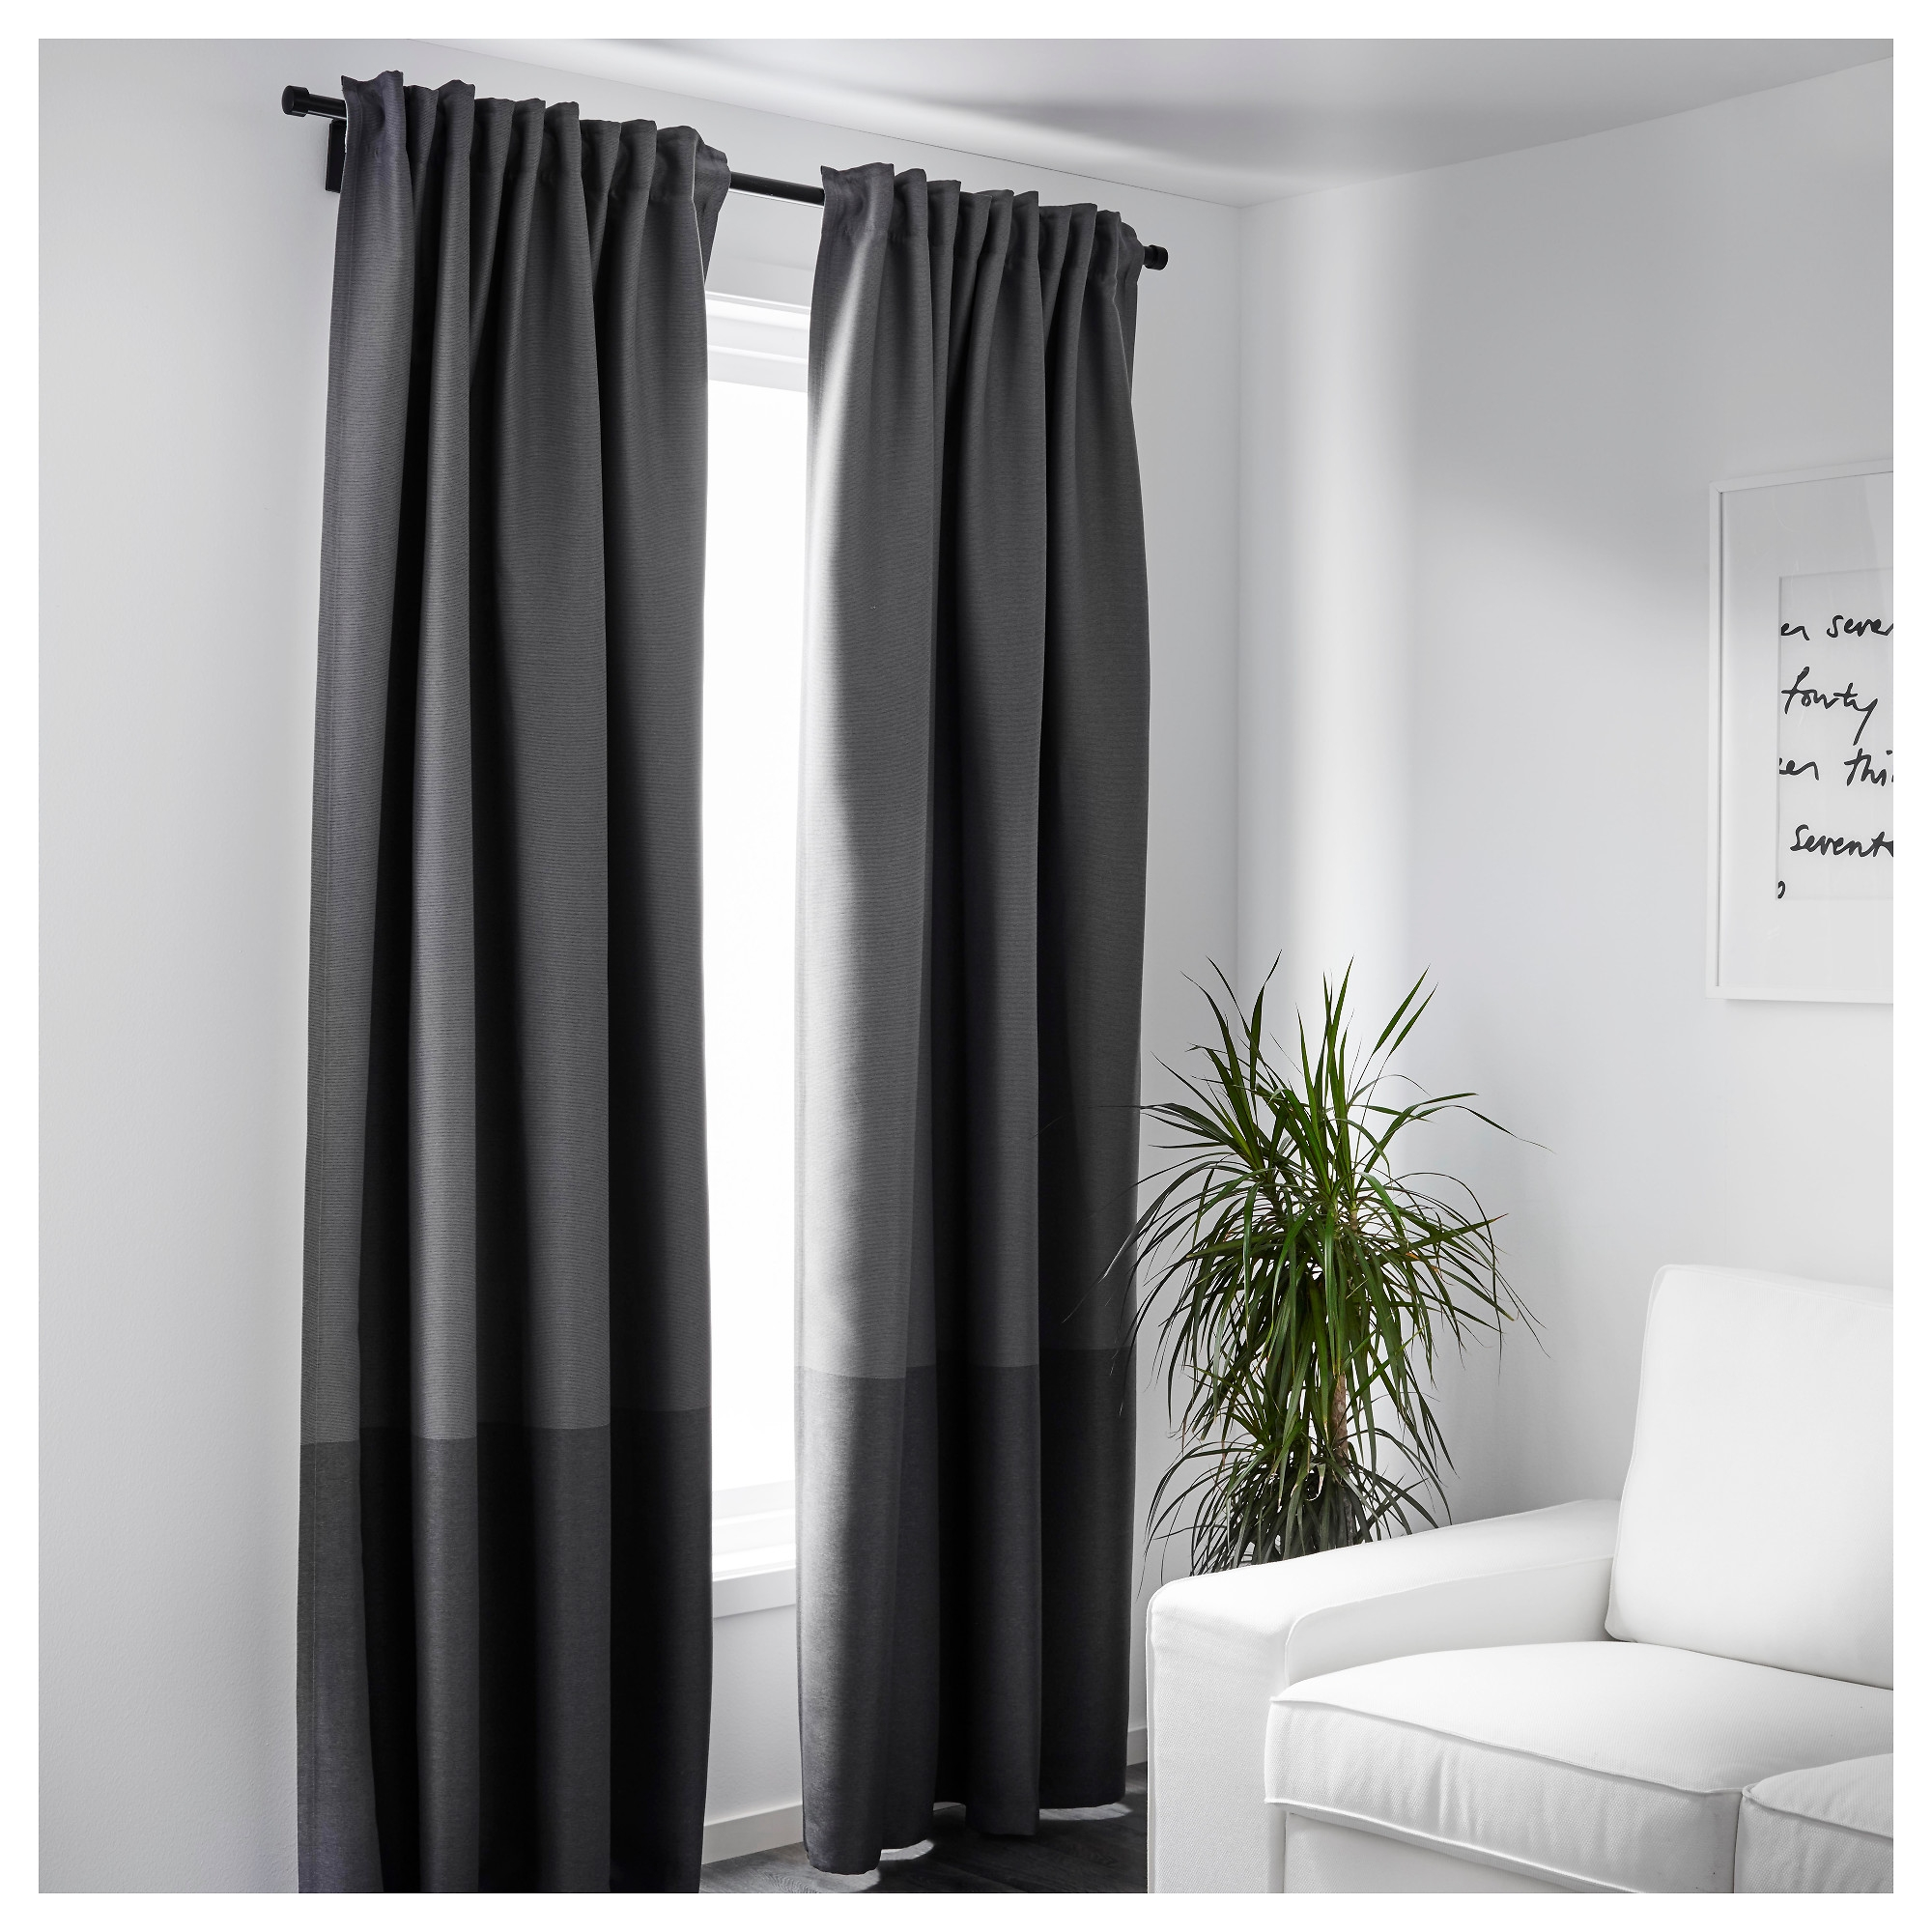 Marjun Blackout Curtains 1 Pair Ikea Pertaining To Thick Grey Curtains (View 3 of 15)